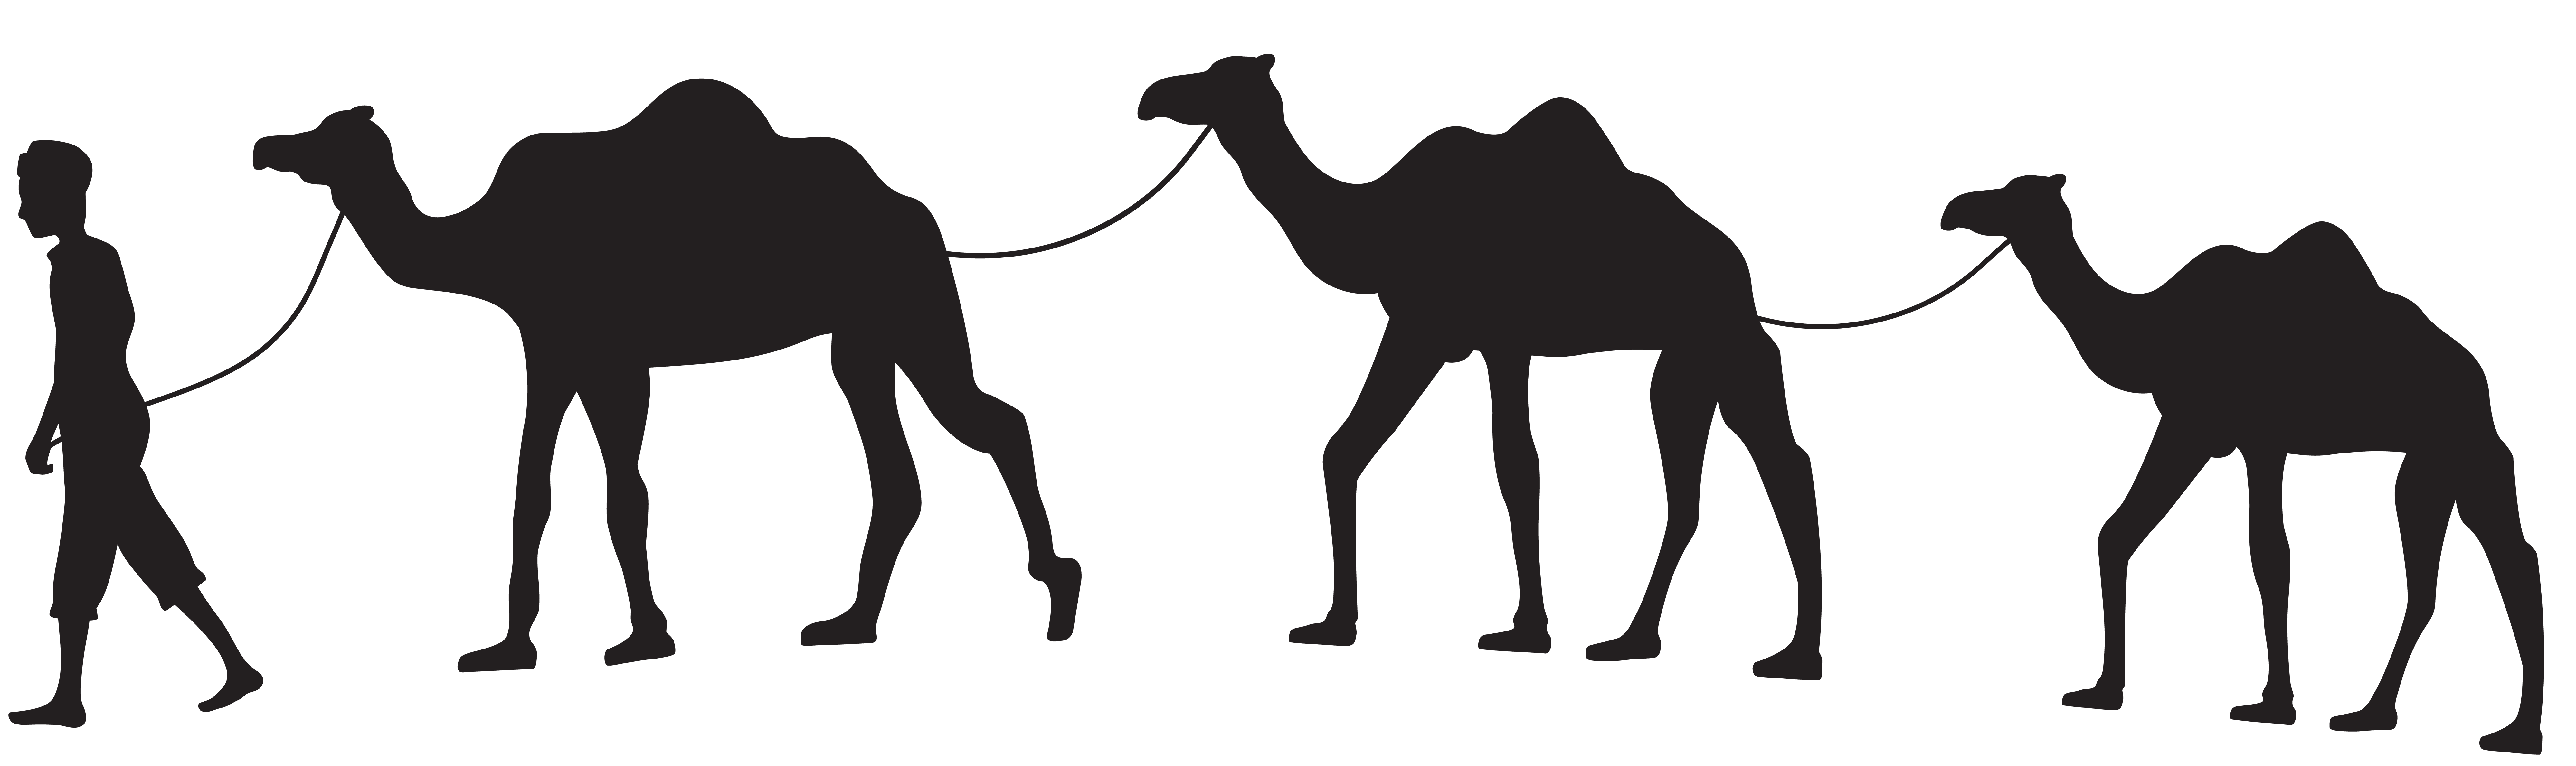 free stock Caravan silhouette png clip. Camel clipart camel shadow.